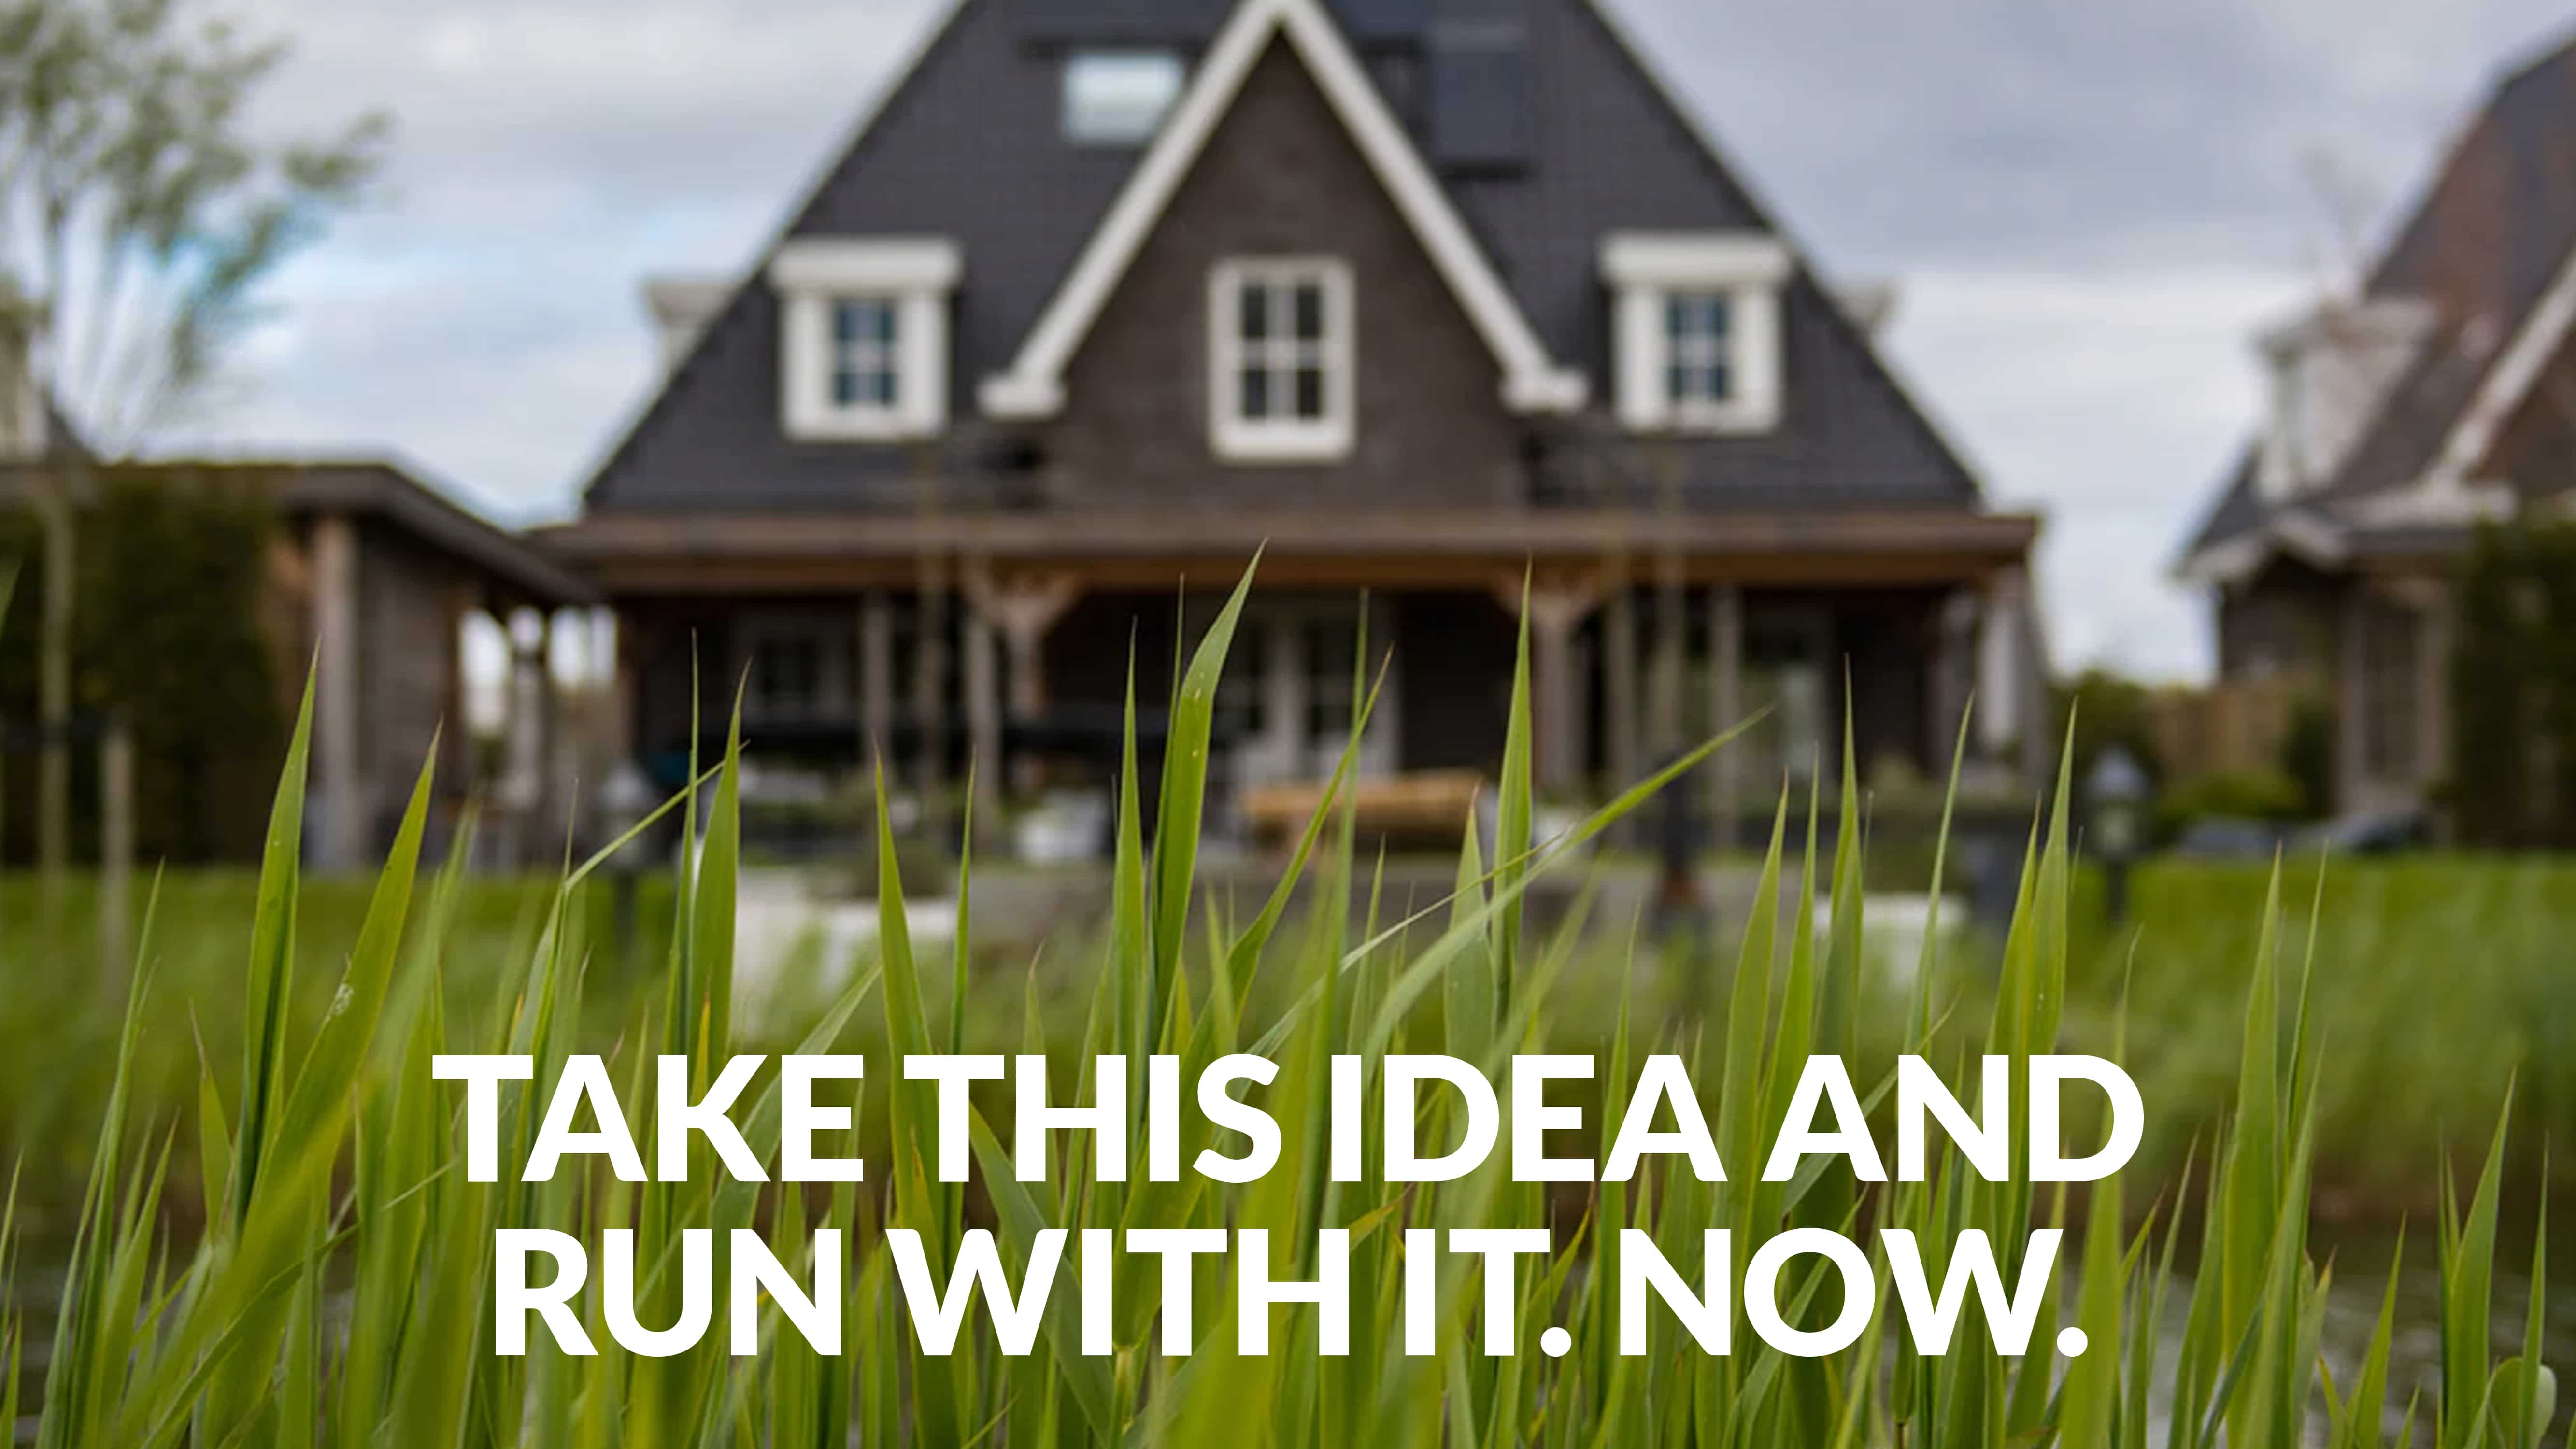 Take this idea and run with it. NOW.